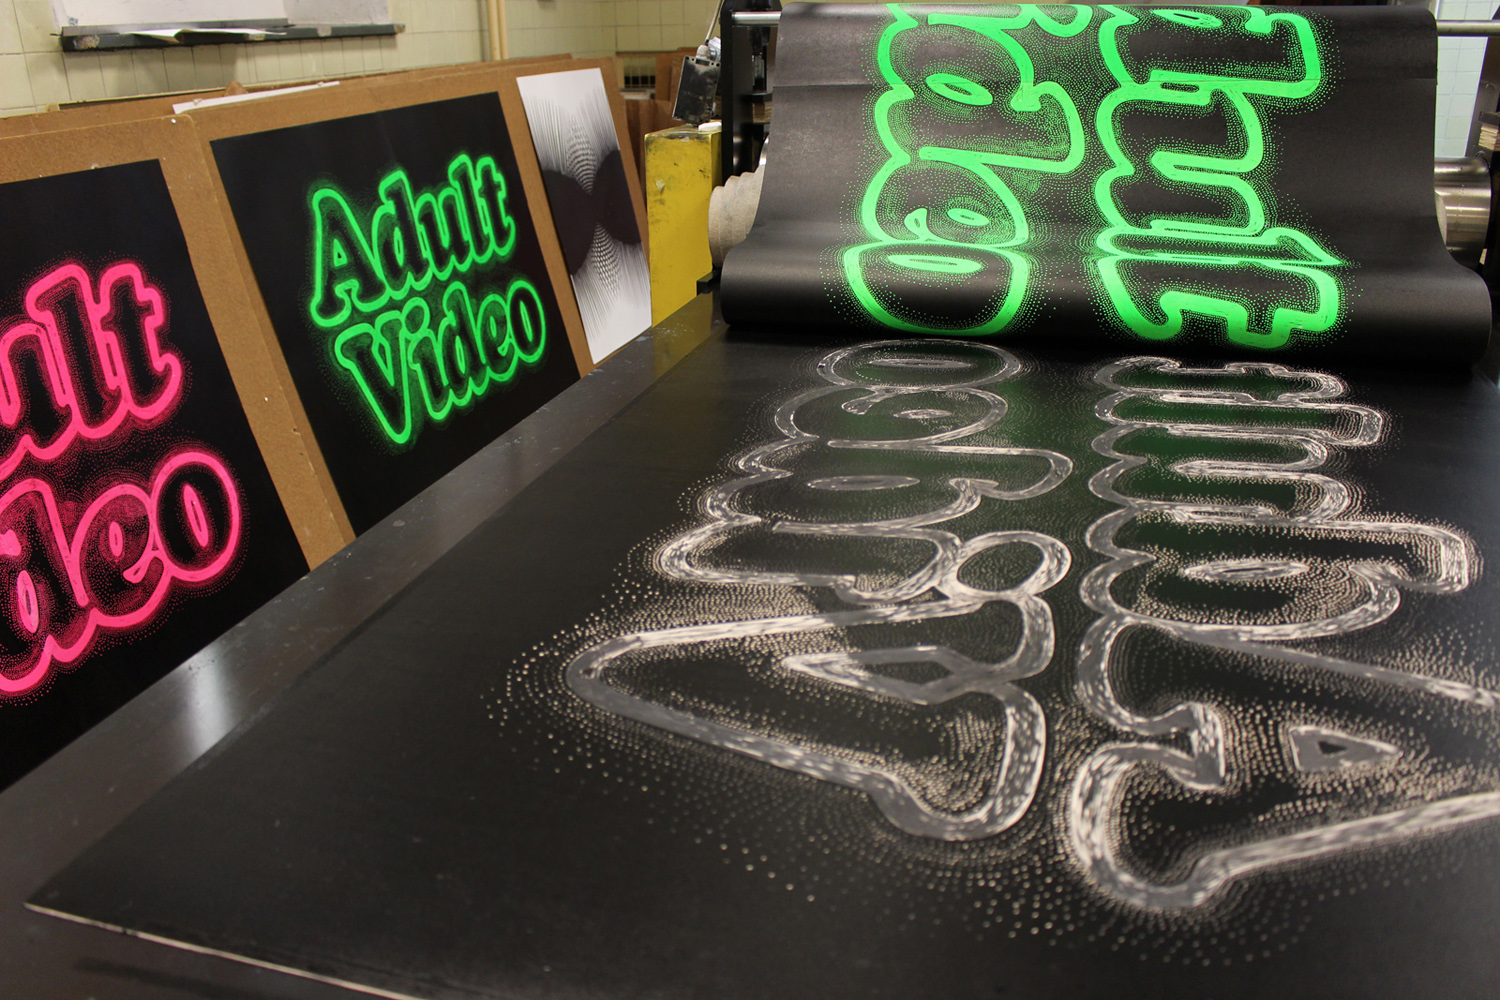 ADULT VIDEO linocut_printing process